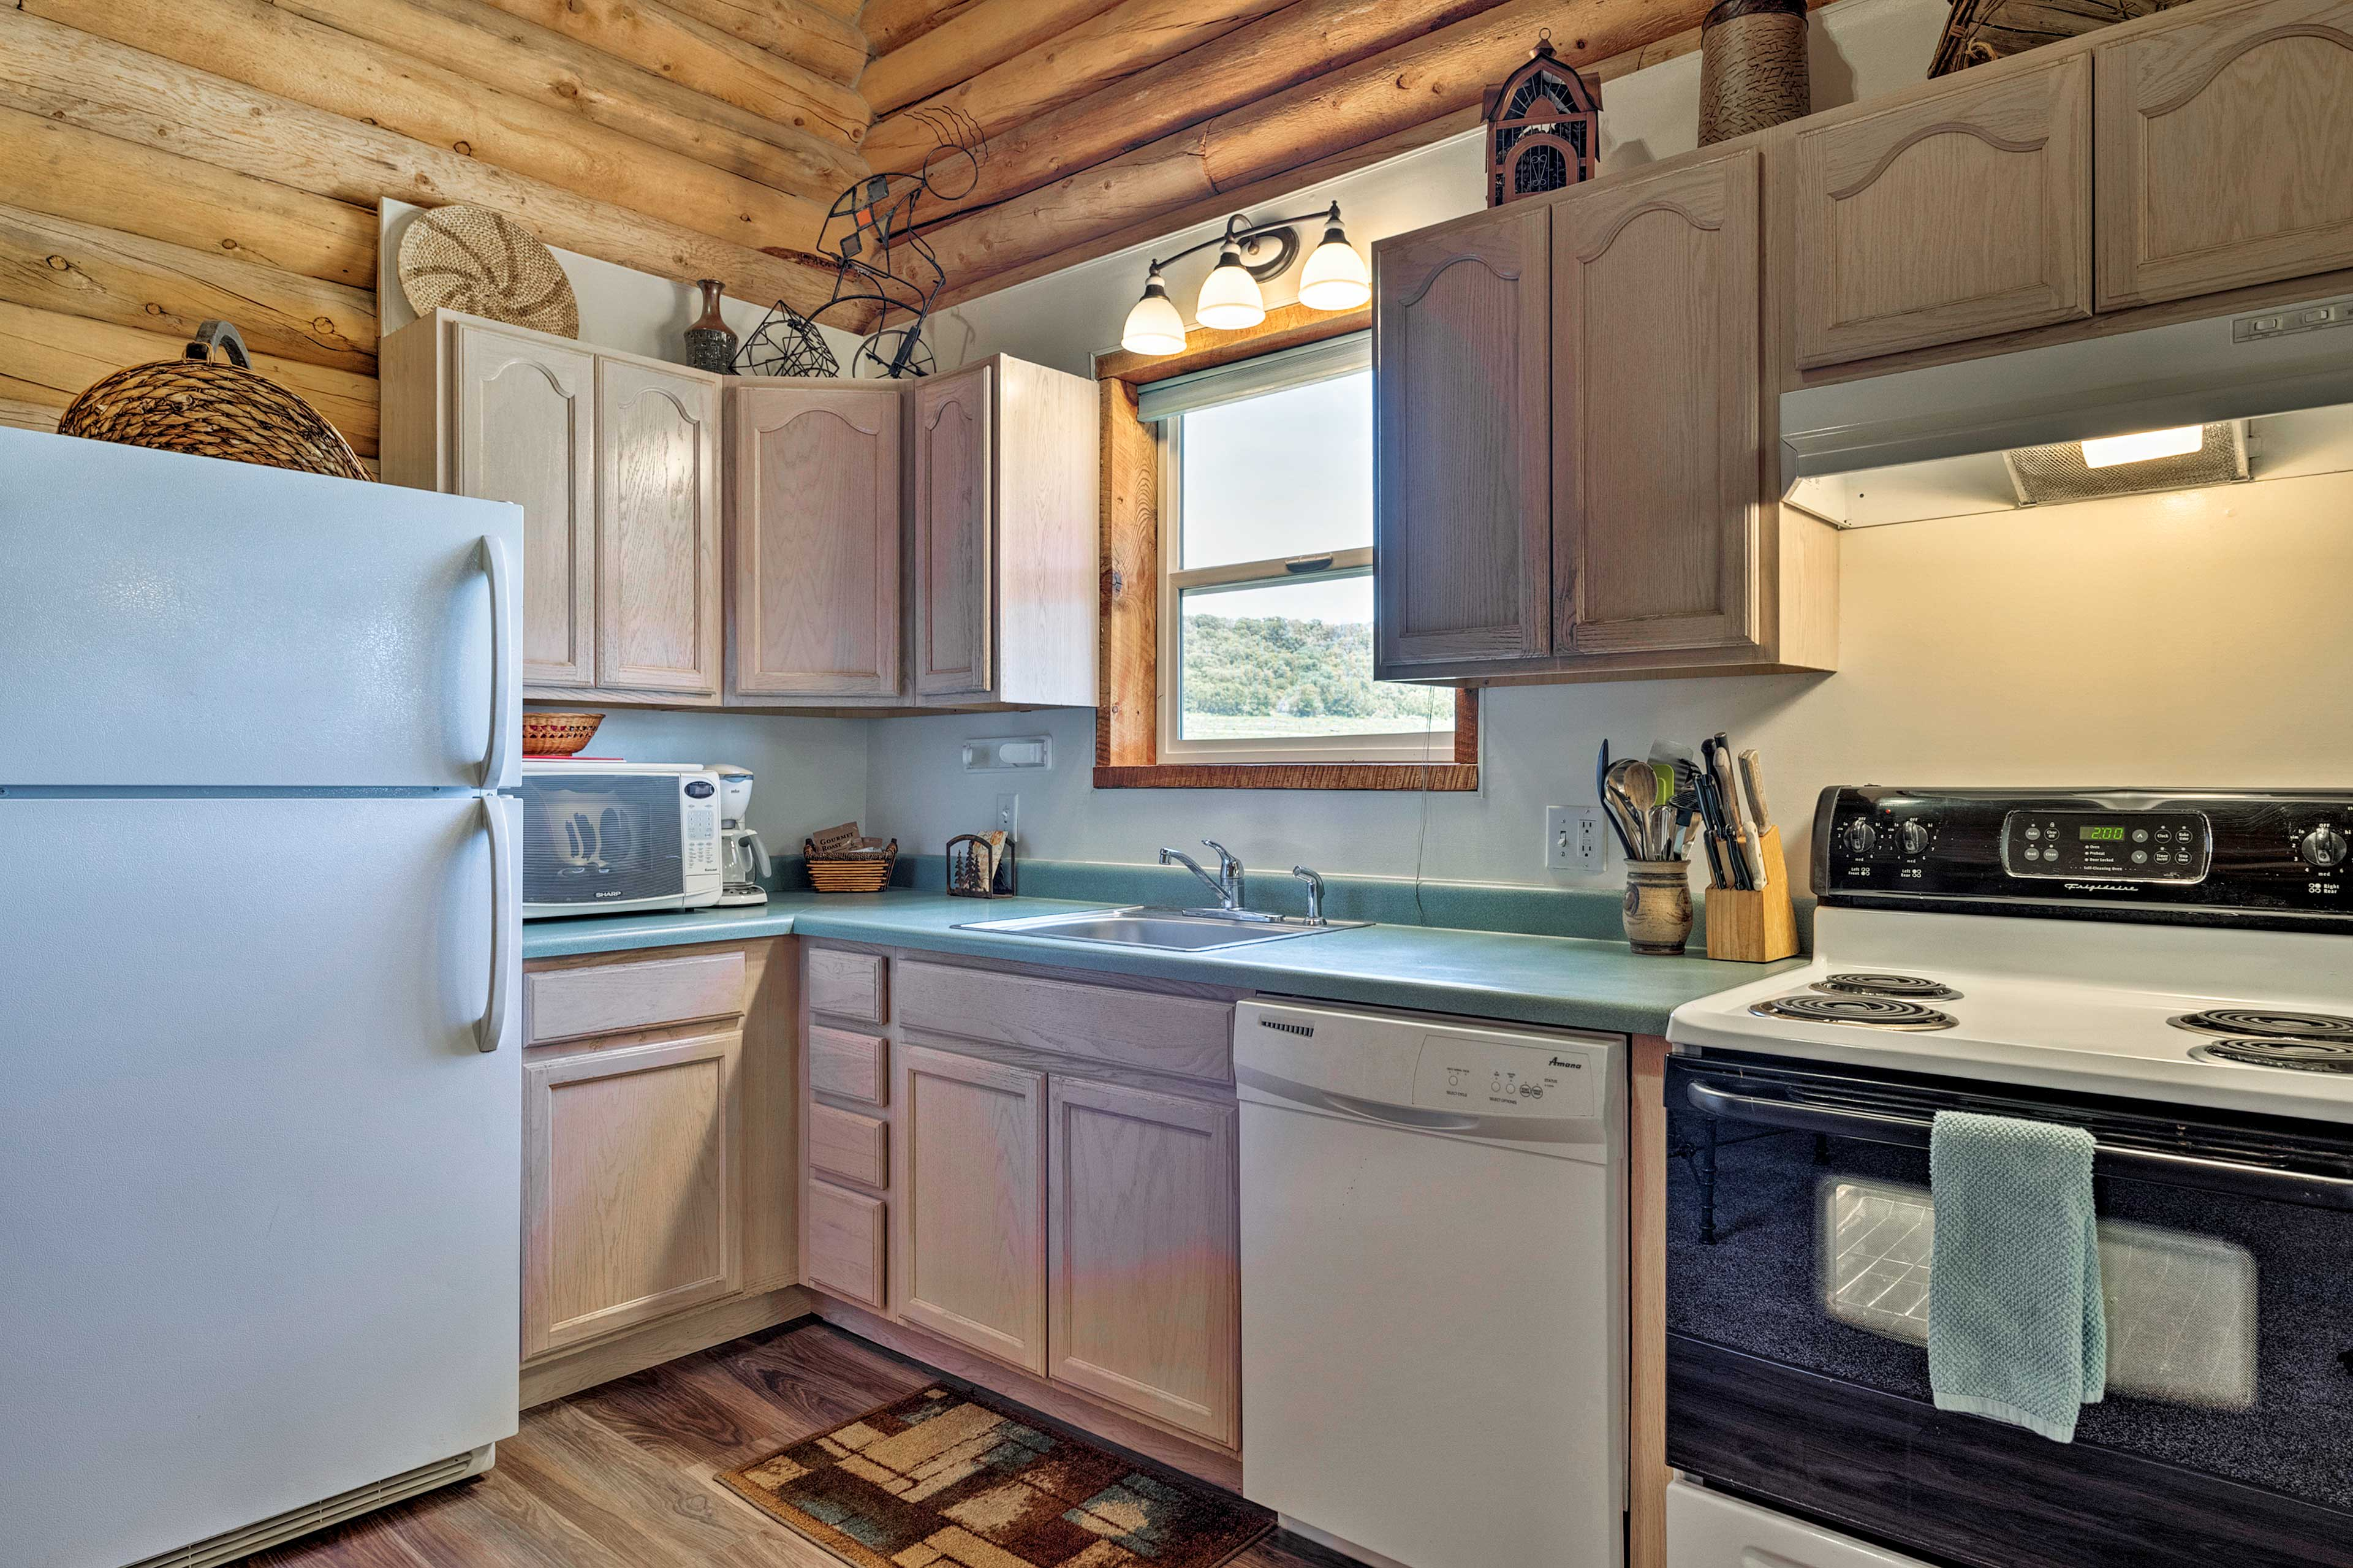 You'll find every necessary pot & pan in this fully equipped kitchen.